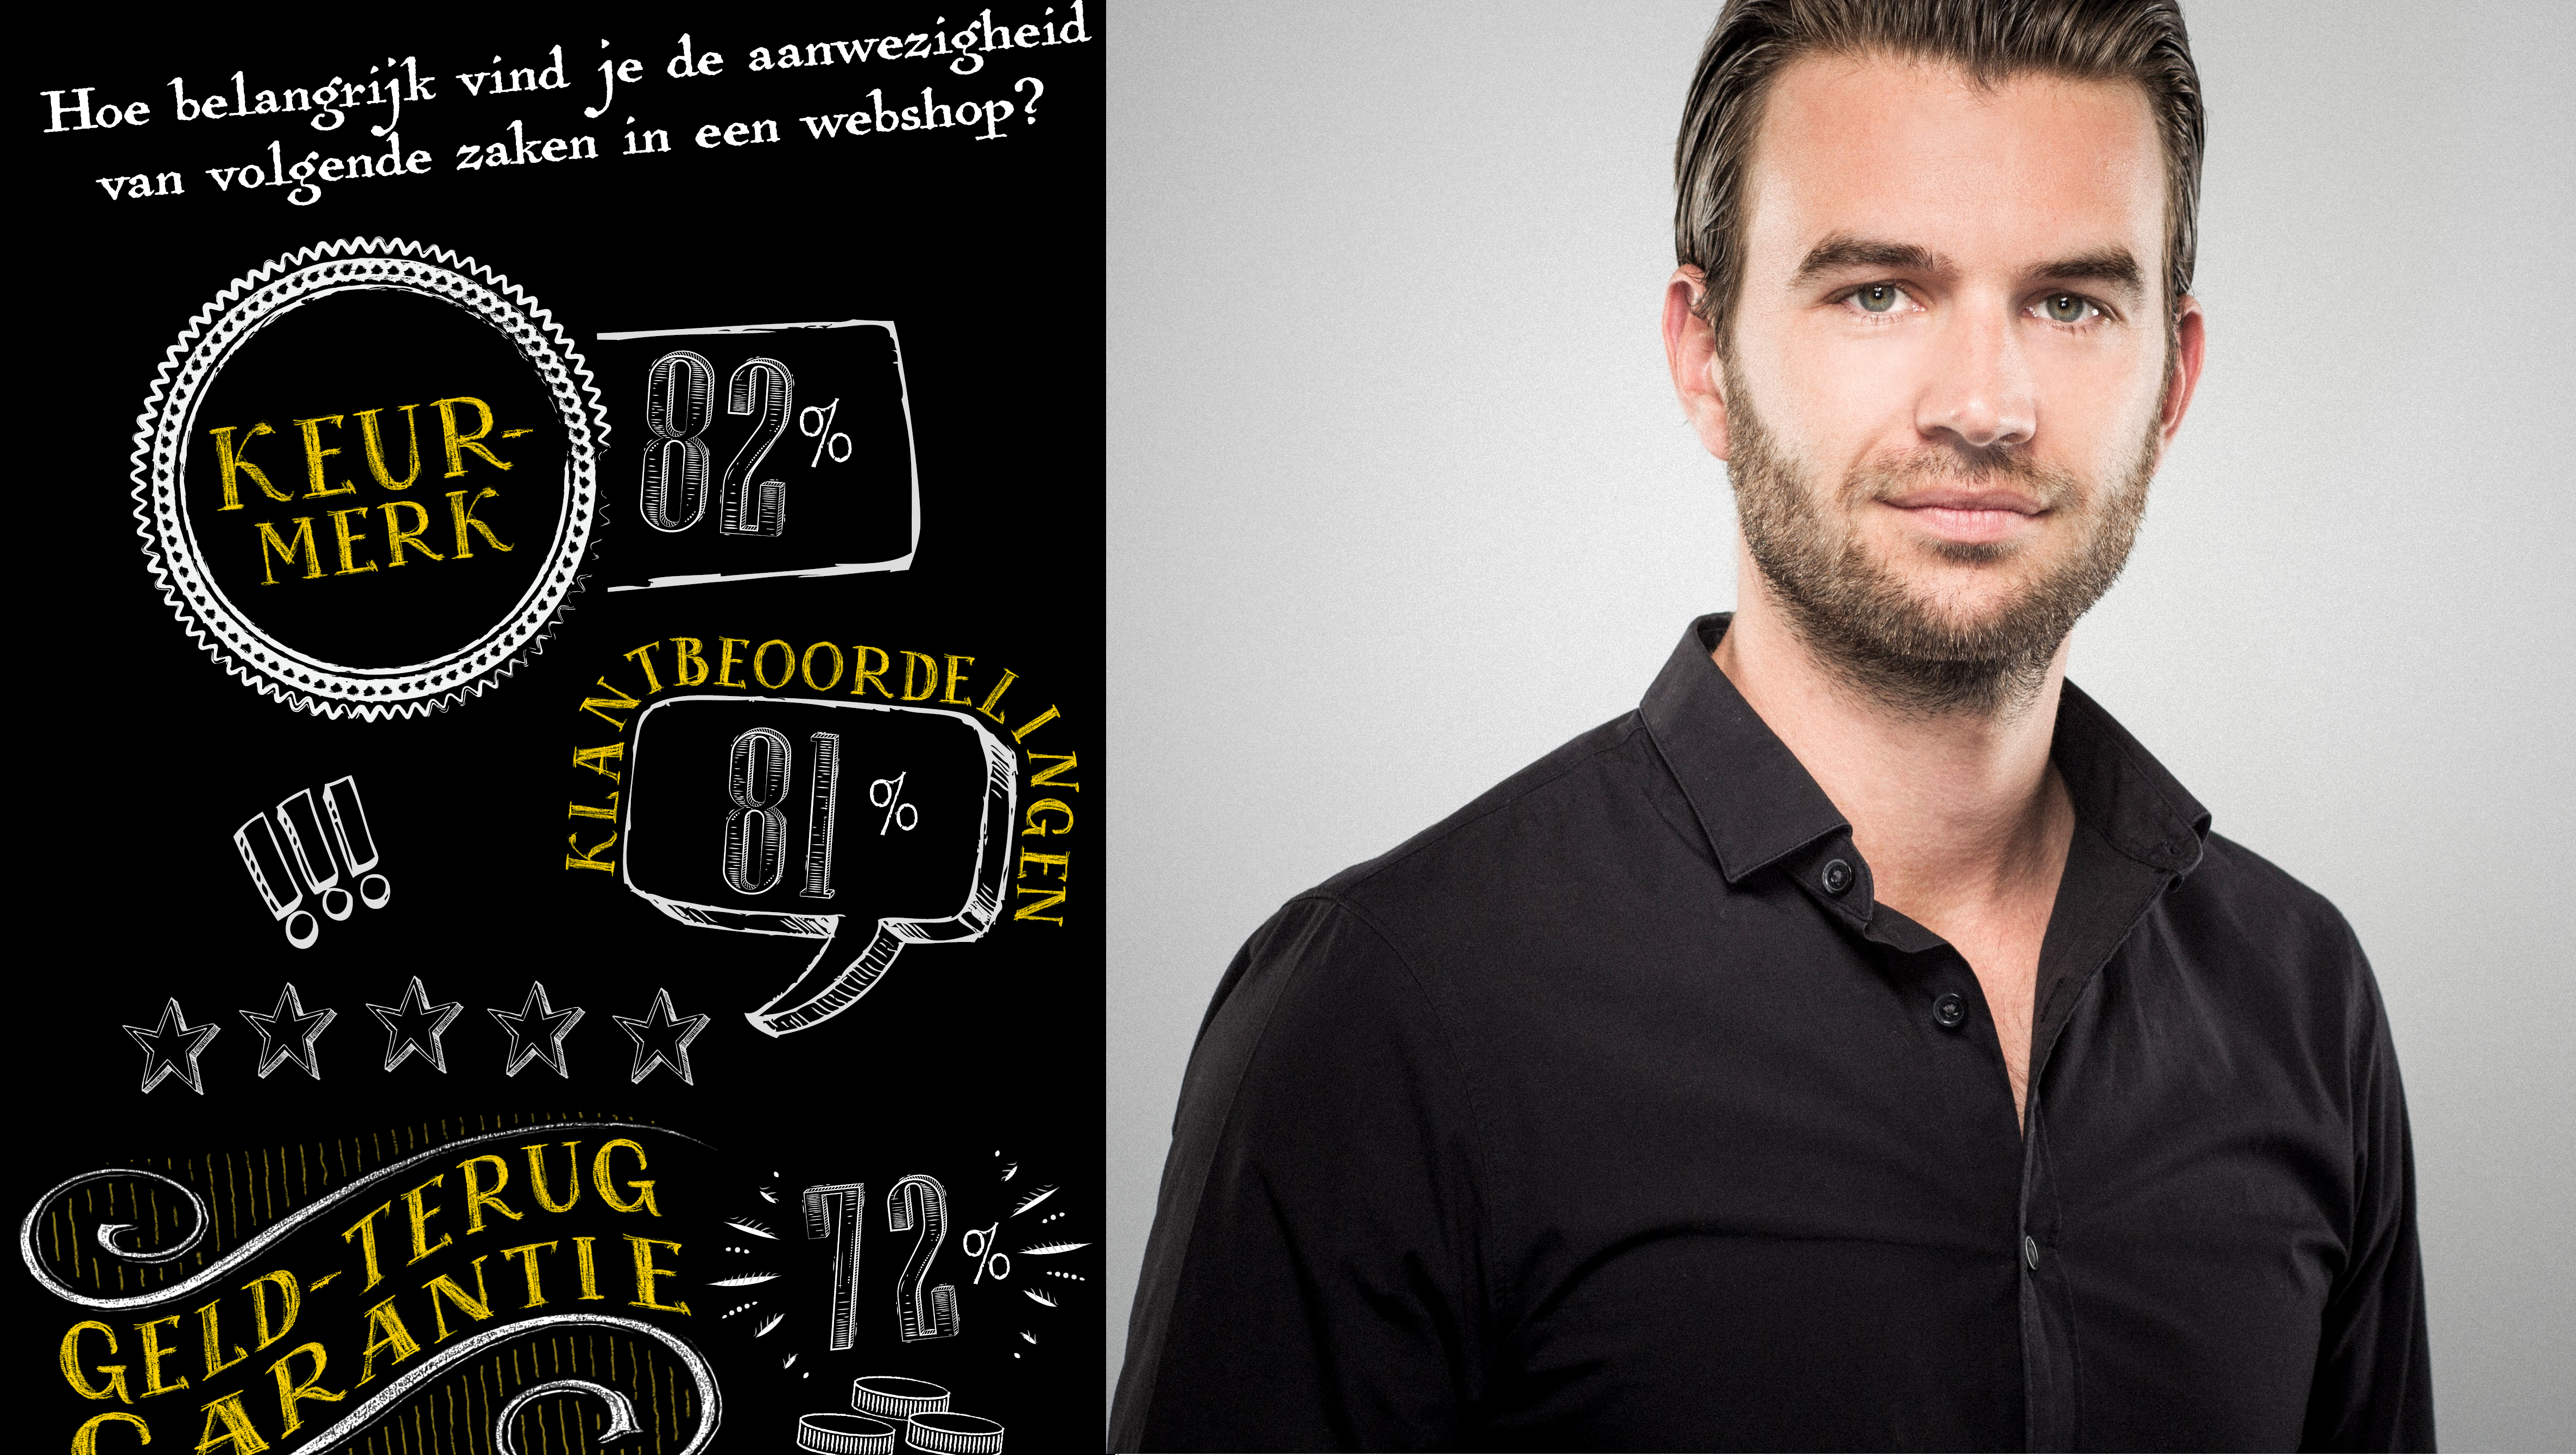 Wouter Wensing, ISM eCompany